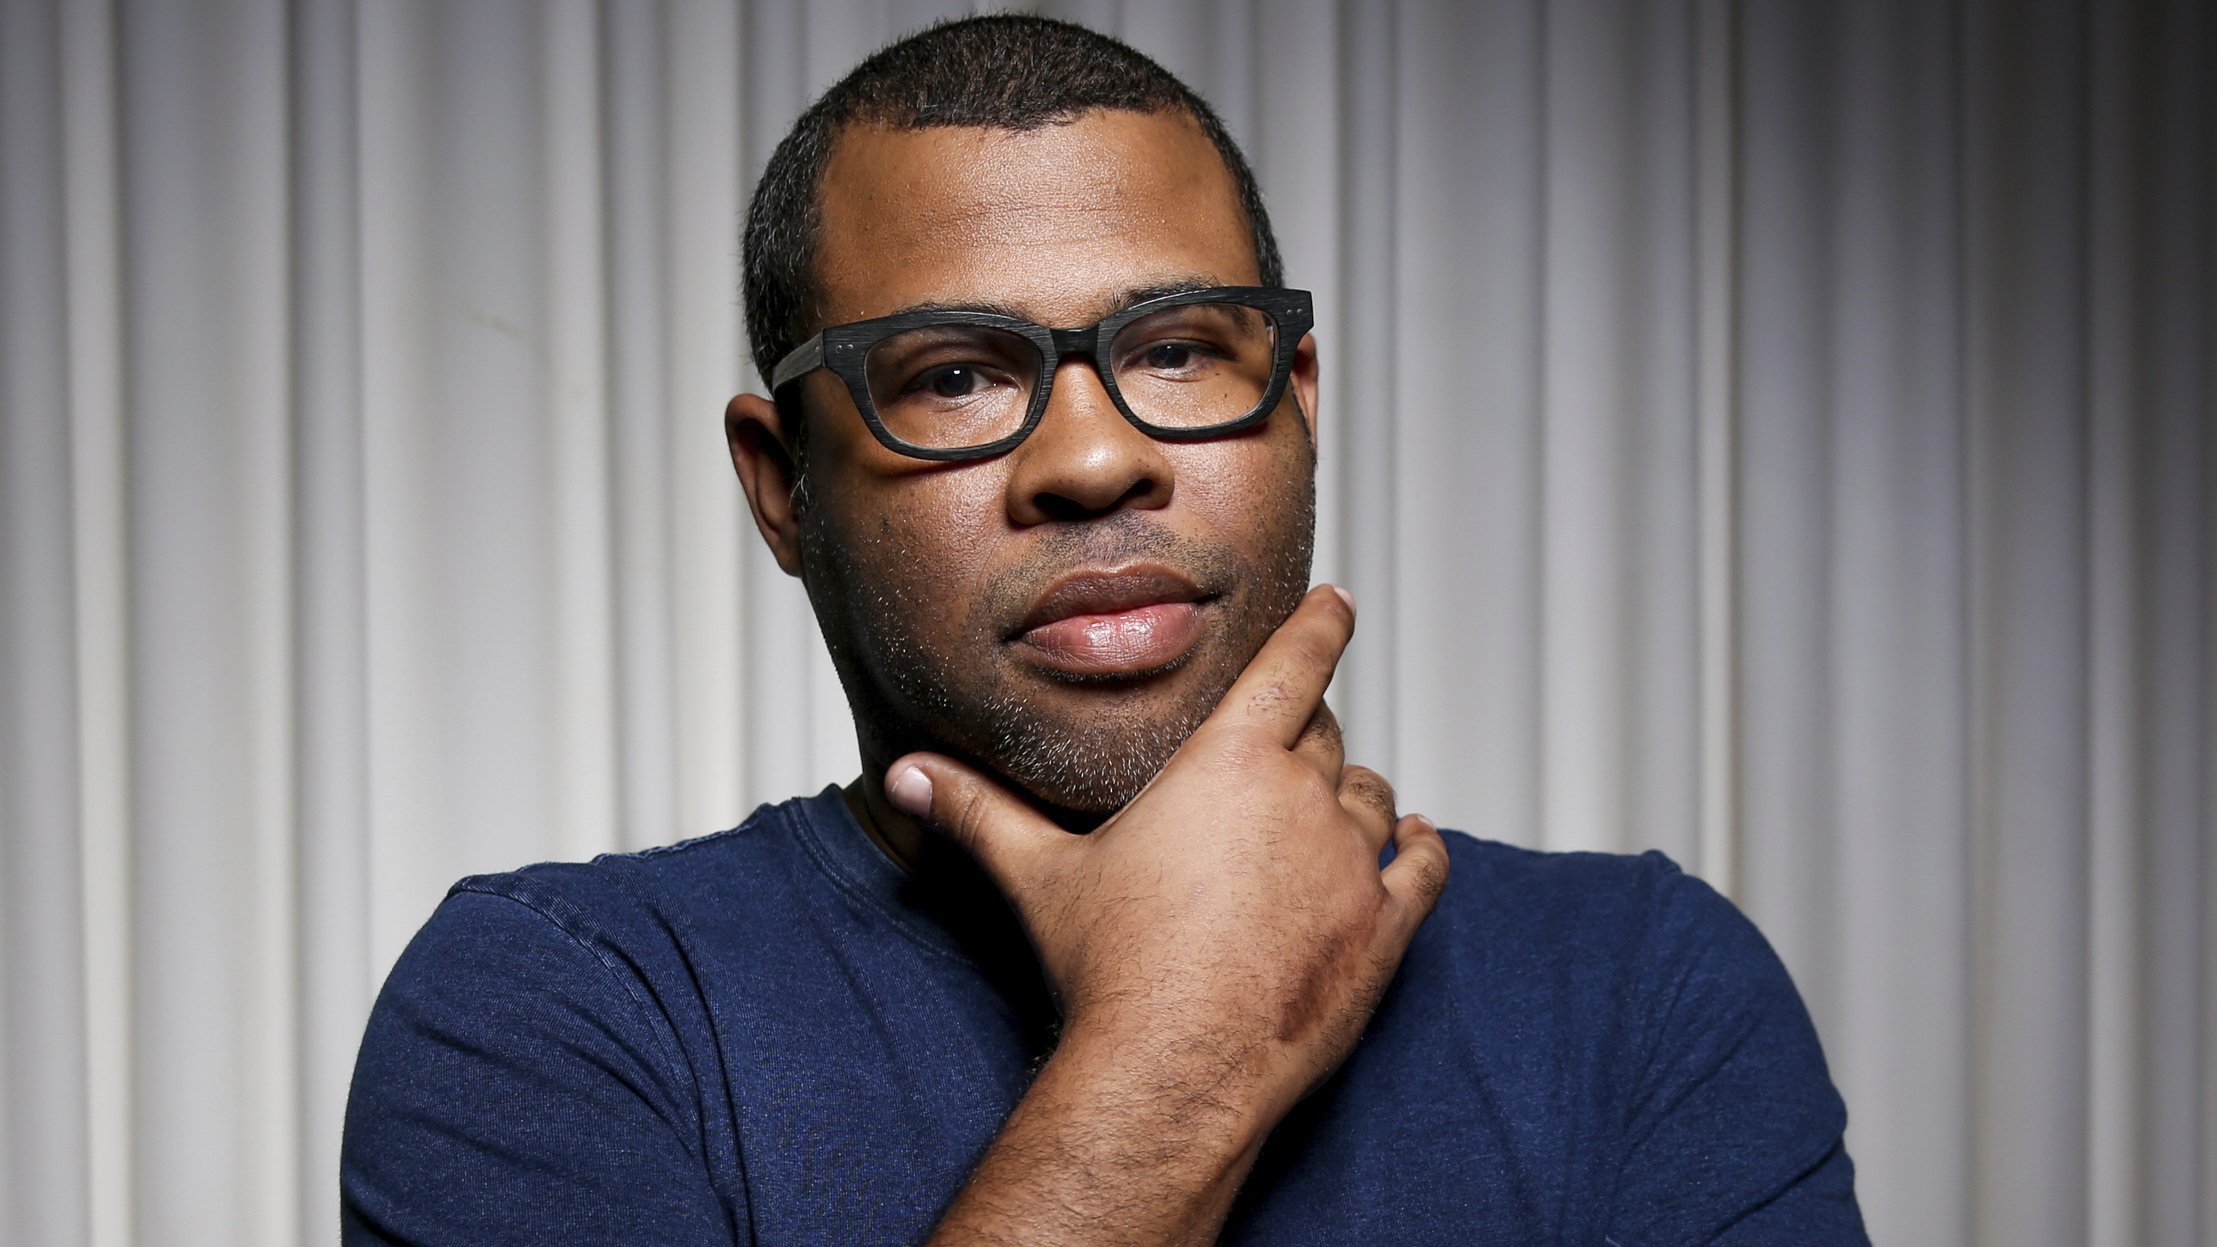 Get Out Sprang From An Effort To Master Fear Says Director Jordan Peele Code Switch Npr